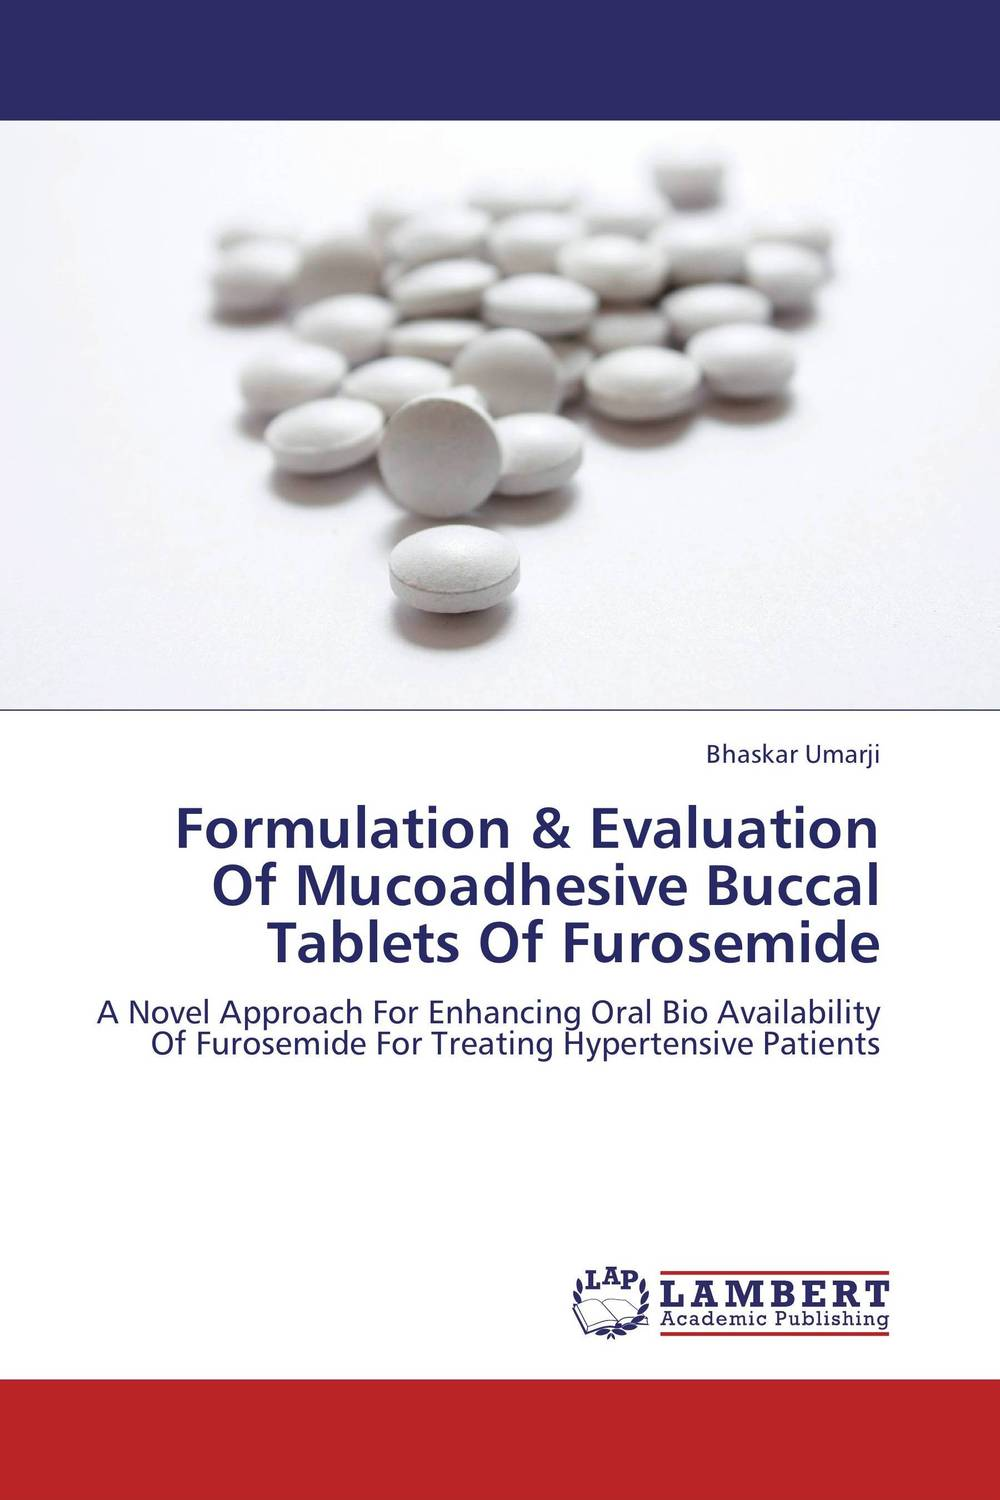 Formulation & Evaluation Of Mucoadhesive Buccal Tablets Of Furosemide amita yadav kamal singh rathore and geeta m patel formulation evaluation and optimization of mouth dissolving tablets